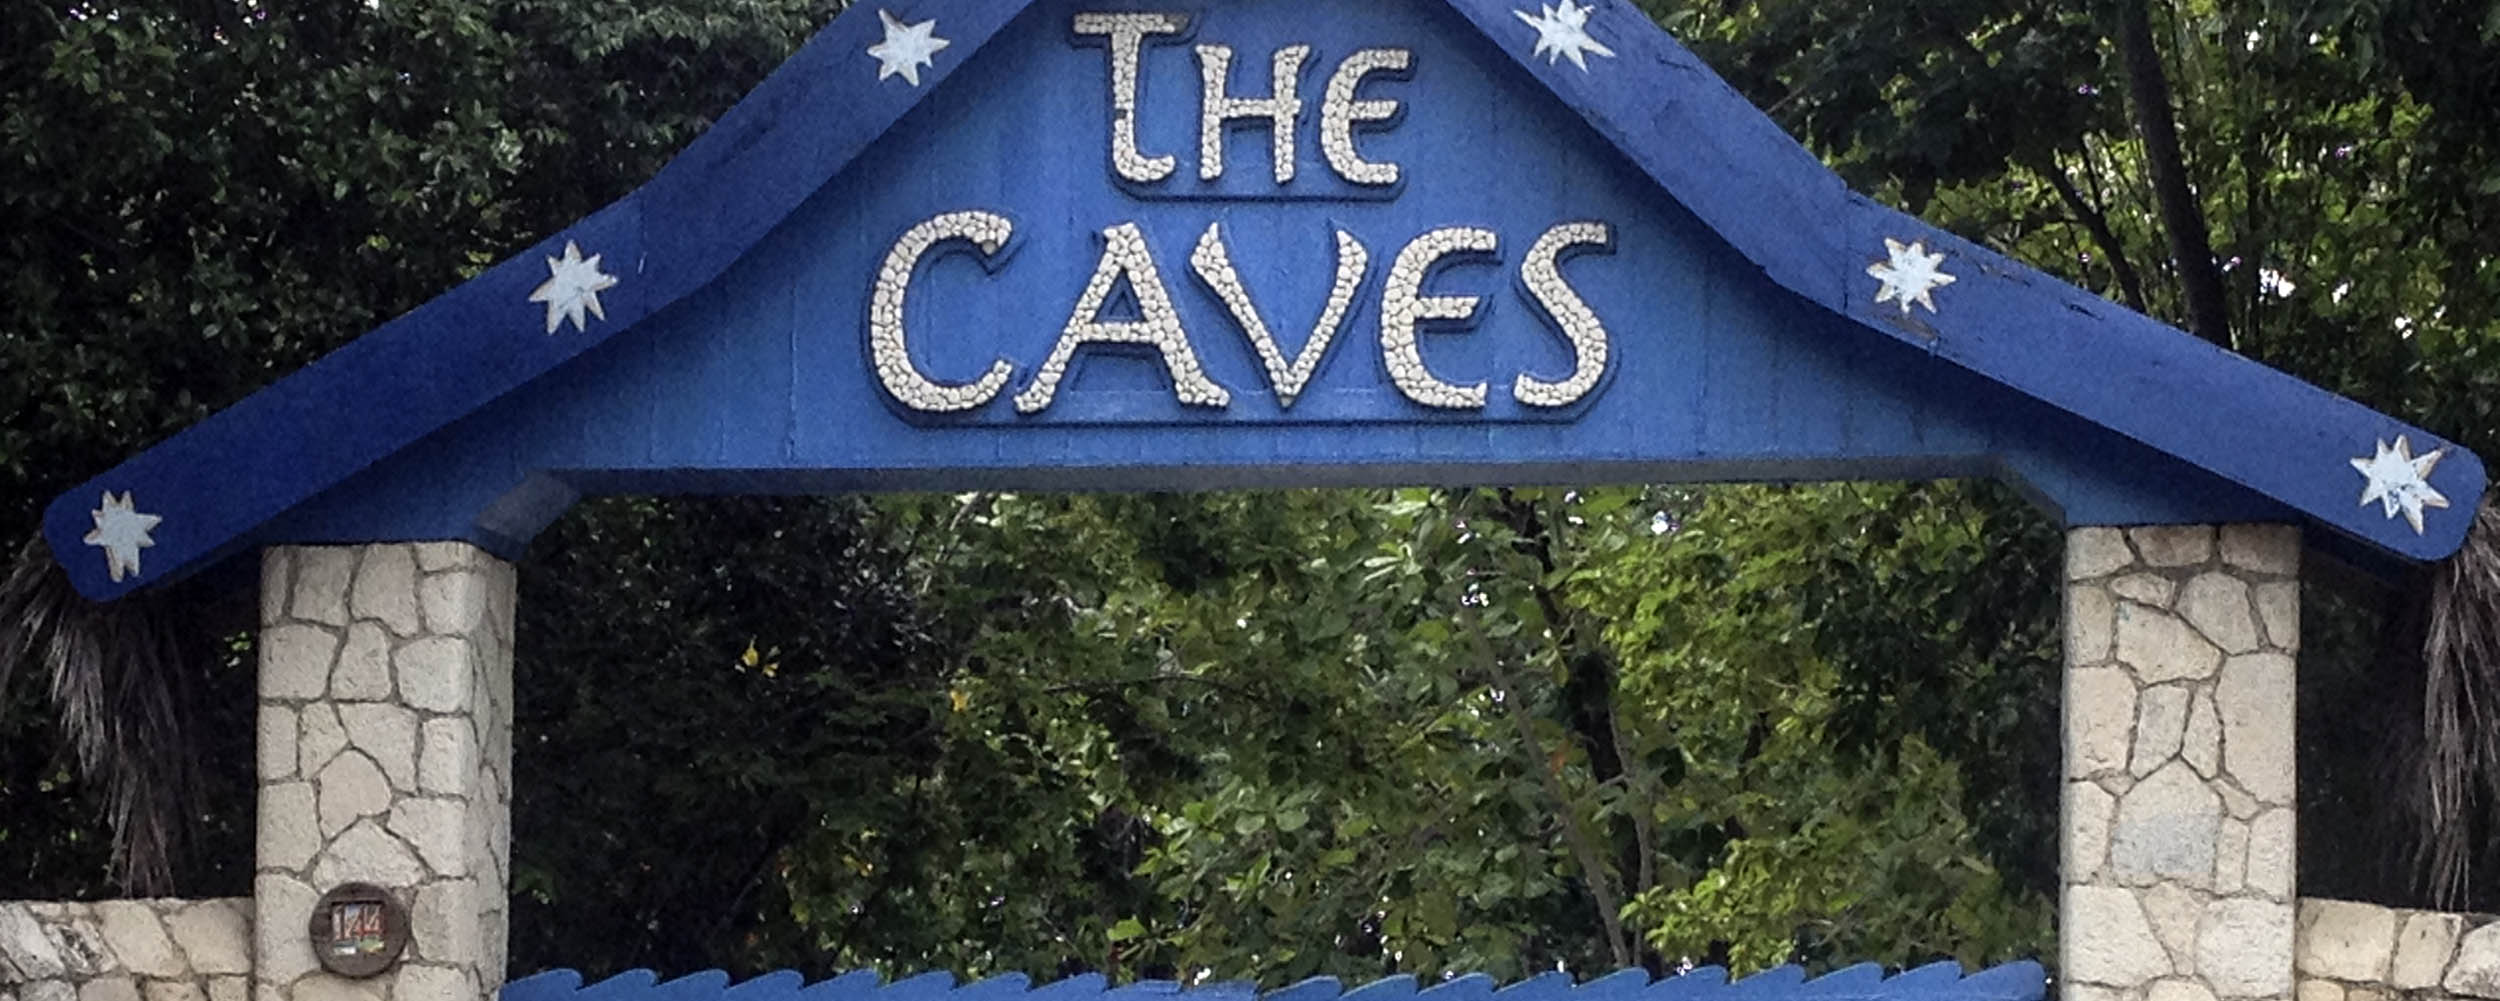 The Caves - Negril Jamaica